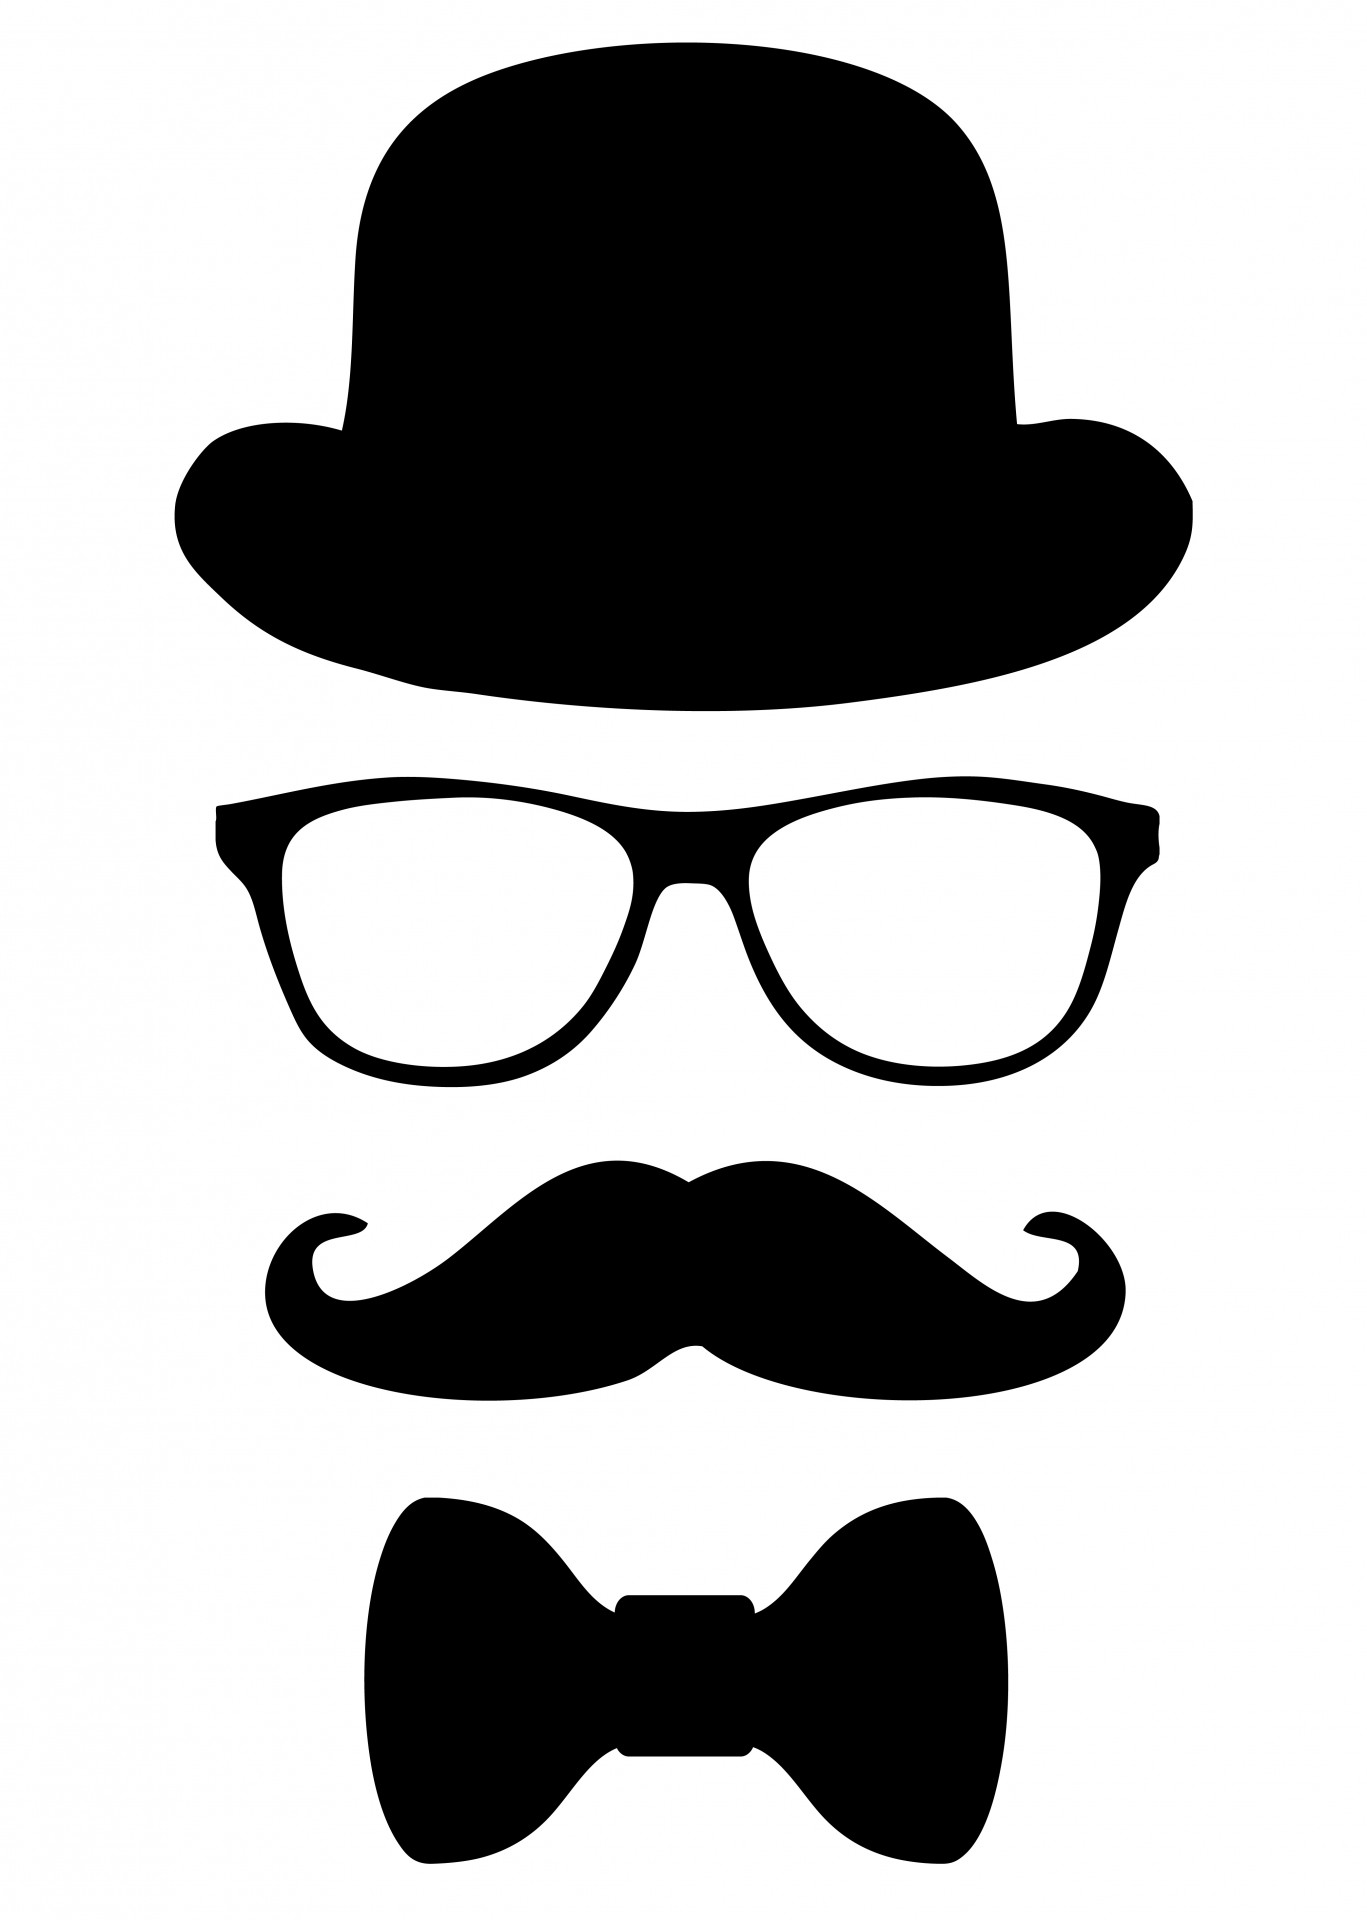 A Man In Disguise Clipart.